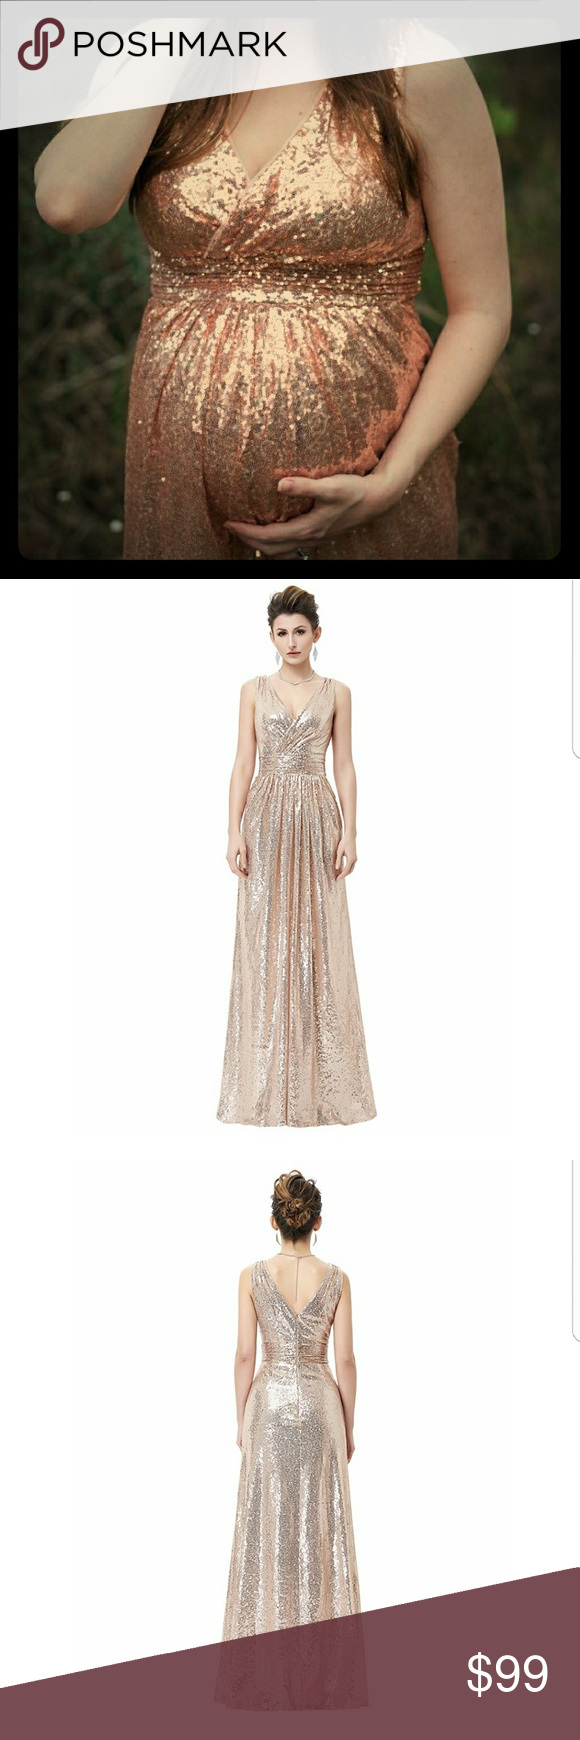 e6268bc6822 Rose Gold Blush Pink Sequin Maternity Dress Sequin Maternity Dress  Available in Champagne